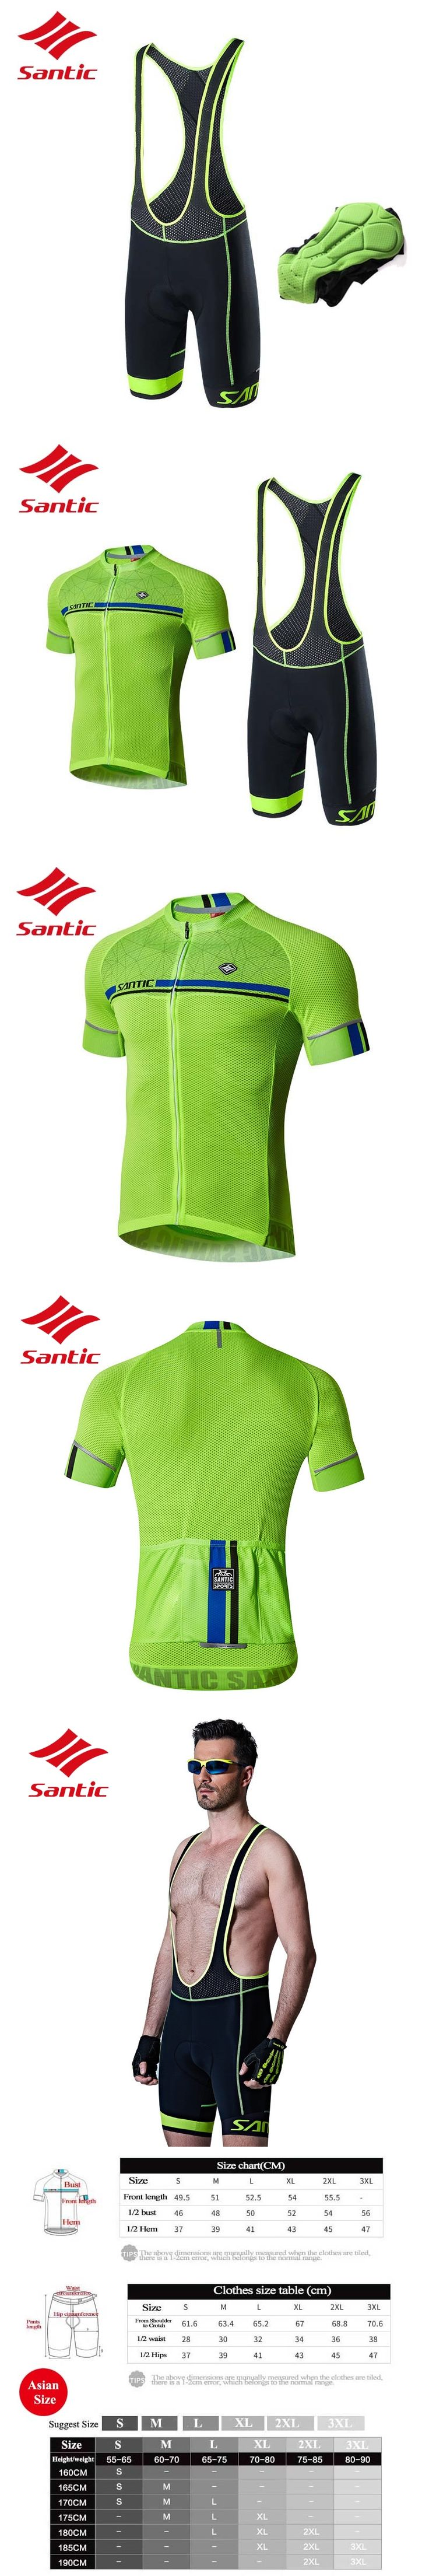 Santic Cycling Jersey Set 2017 Men Pro Team Summer Cycling Clothing MTB Road Bike Bicycle Clothes Suits Ropa Ciclismo Bicicleta